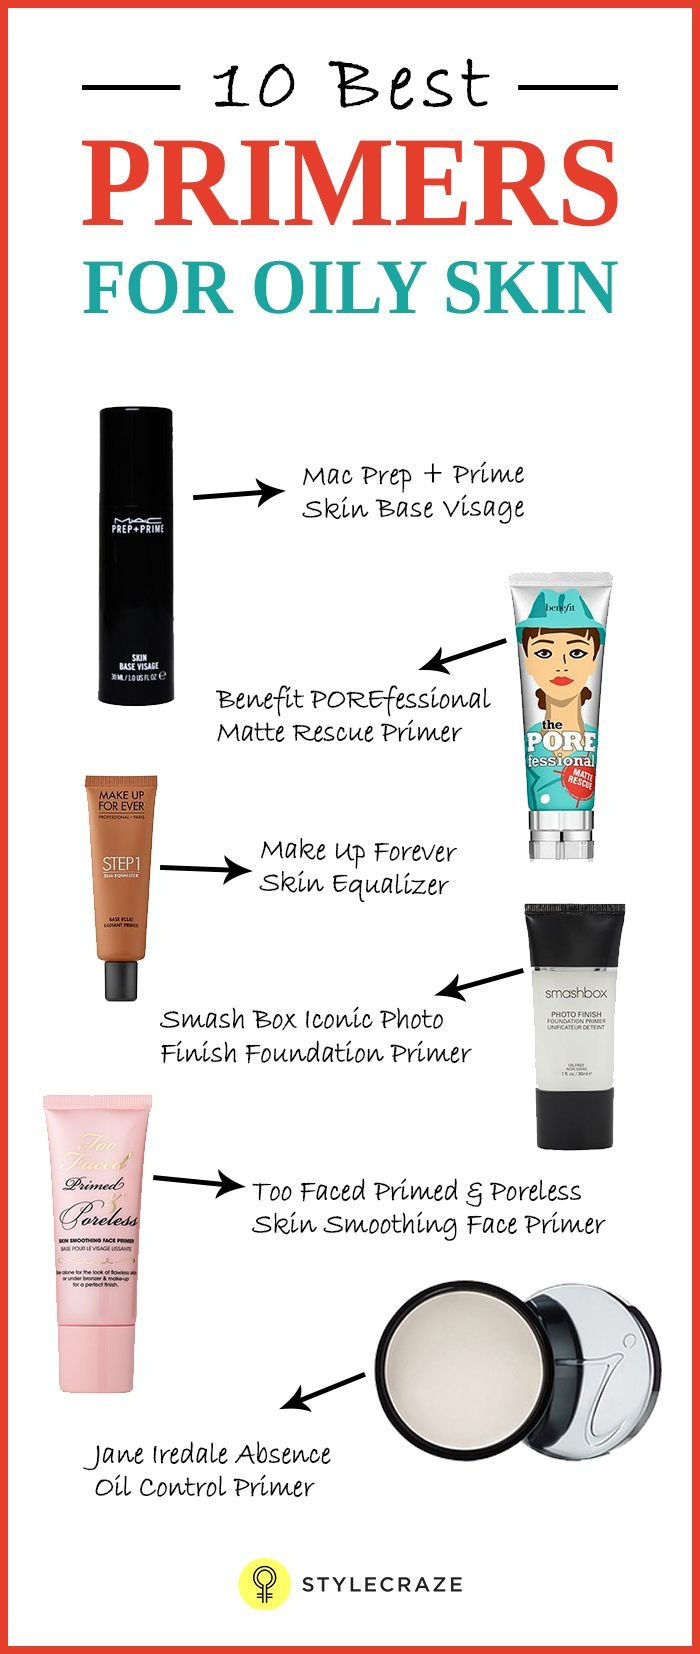 Best Primers For Oily Skin 11 Affordable Primers With Reviews 2020 Primer For Oily Skin Best Primer For Oily Skin Tips For Oily Skin